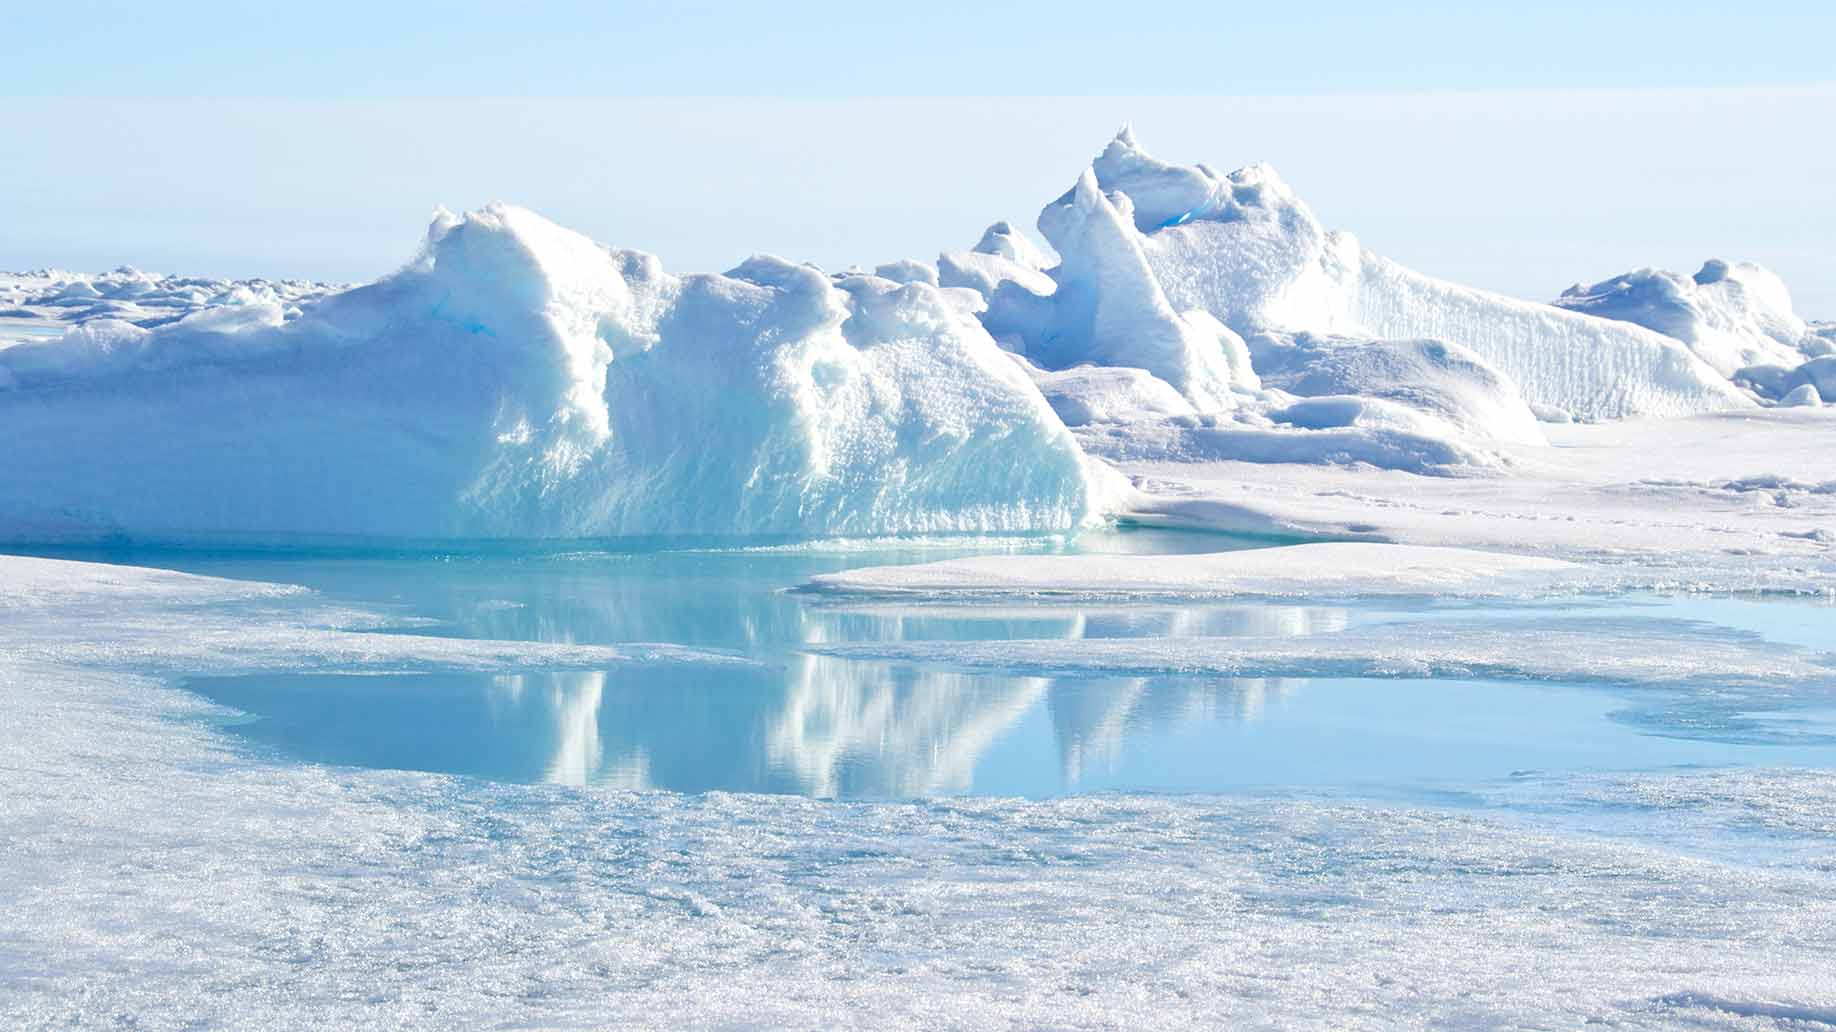 The landscape of the North Pole, the world's northernmost point.